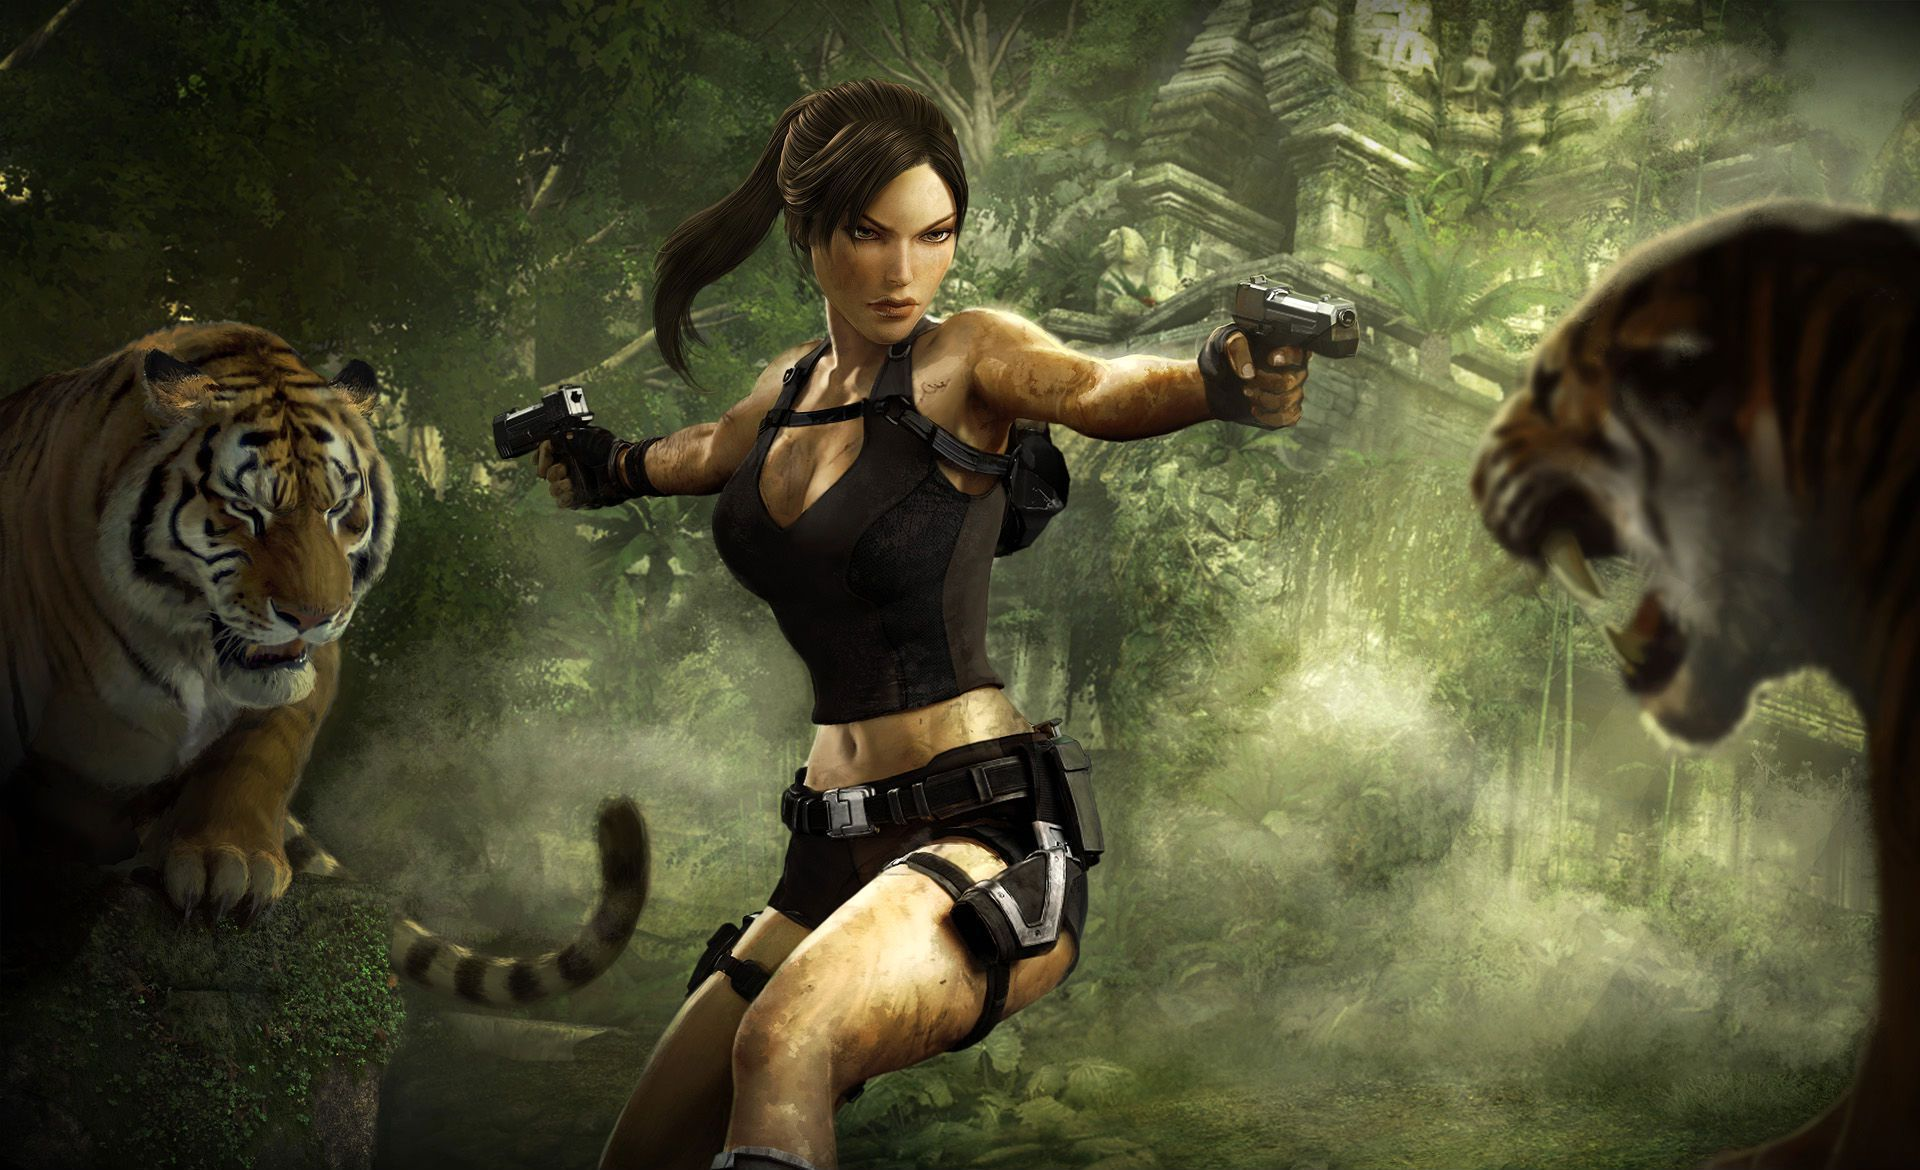 Tomb Raider Wallpaper For Computer